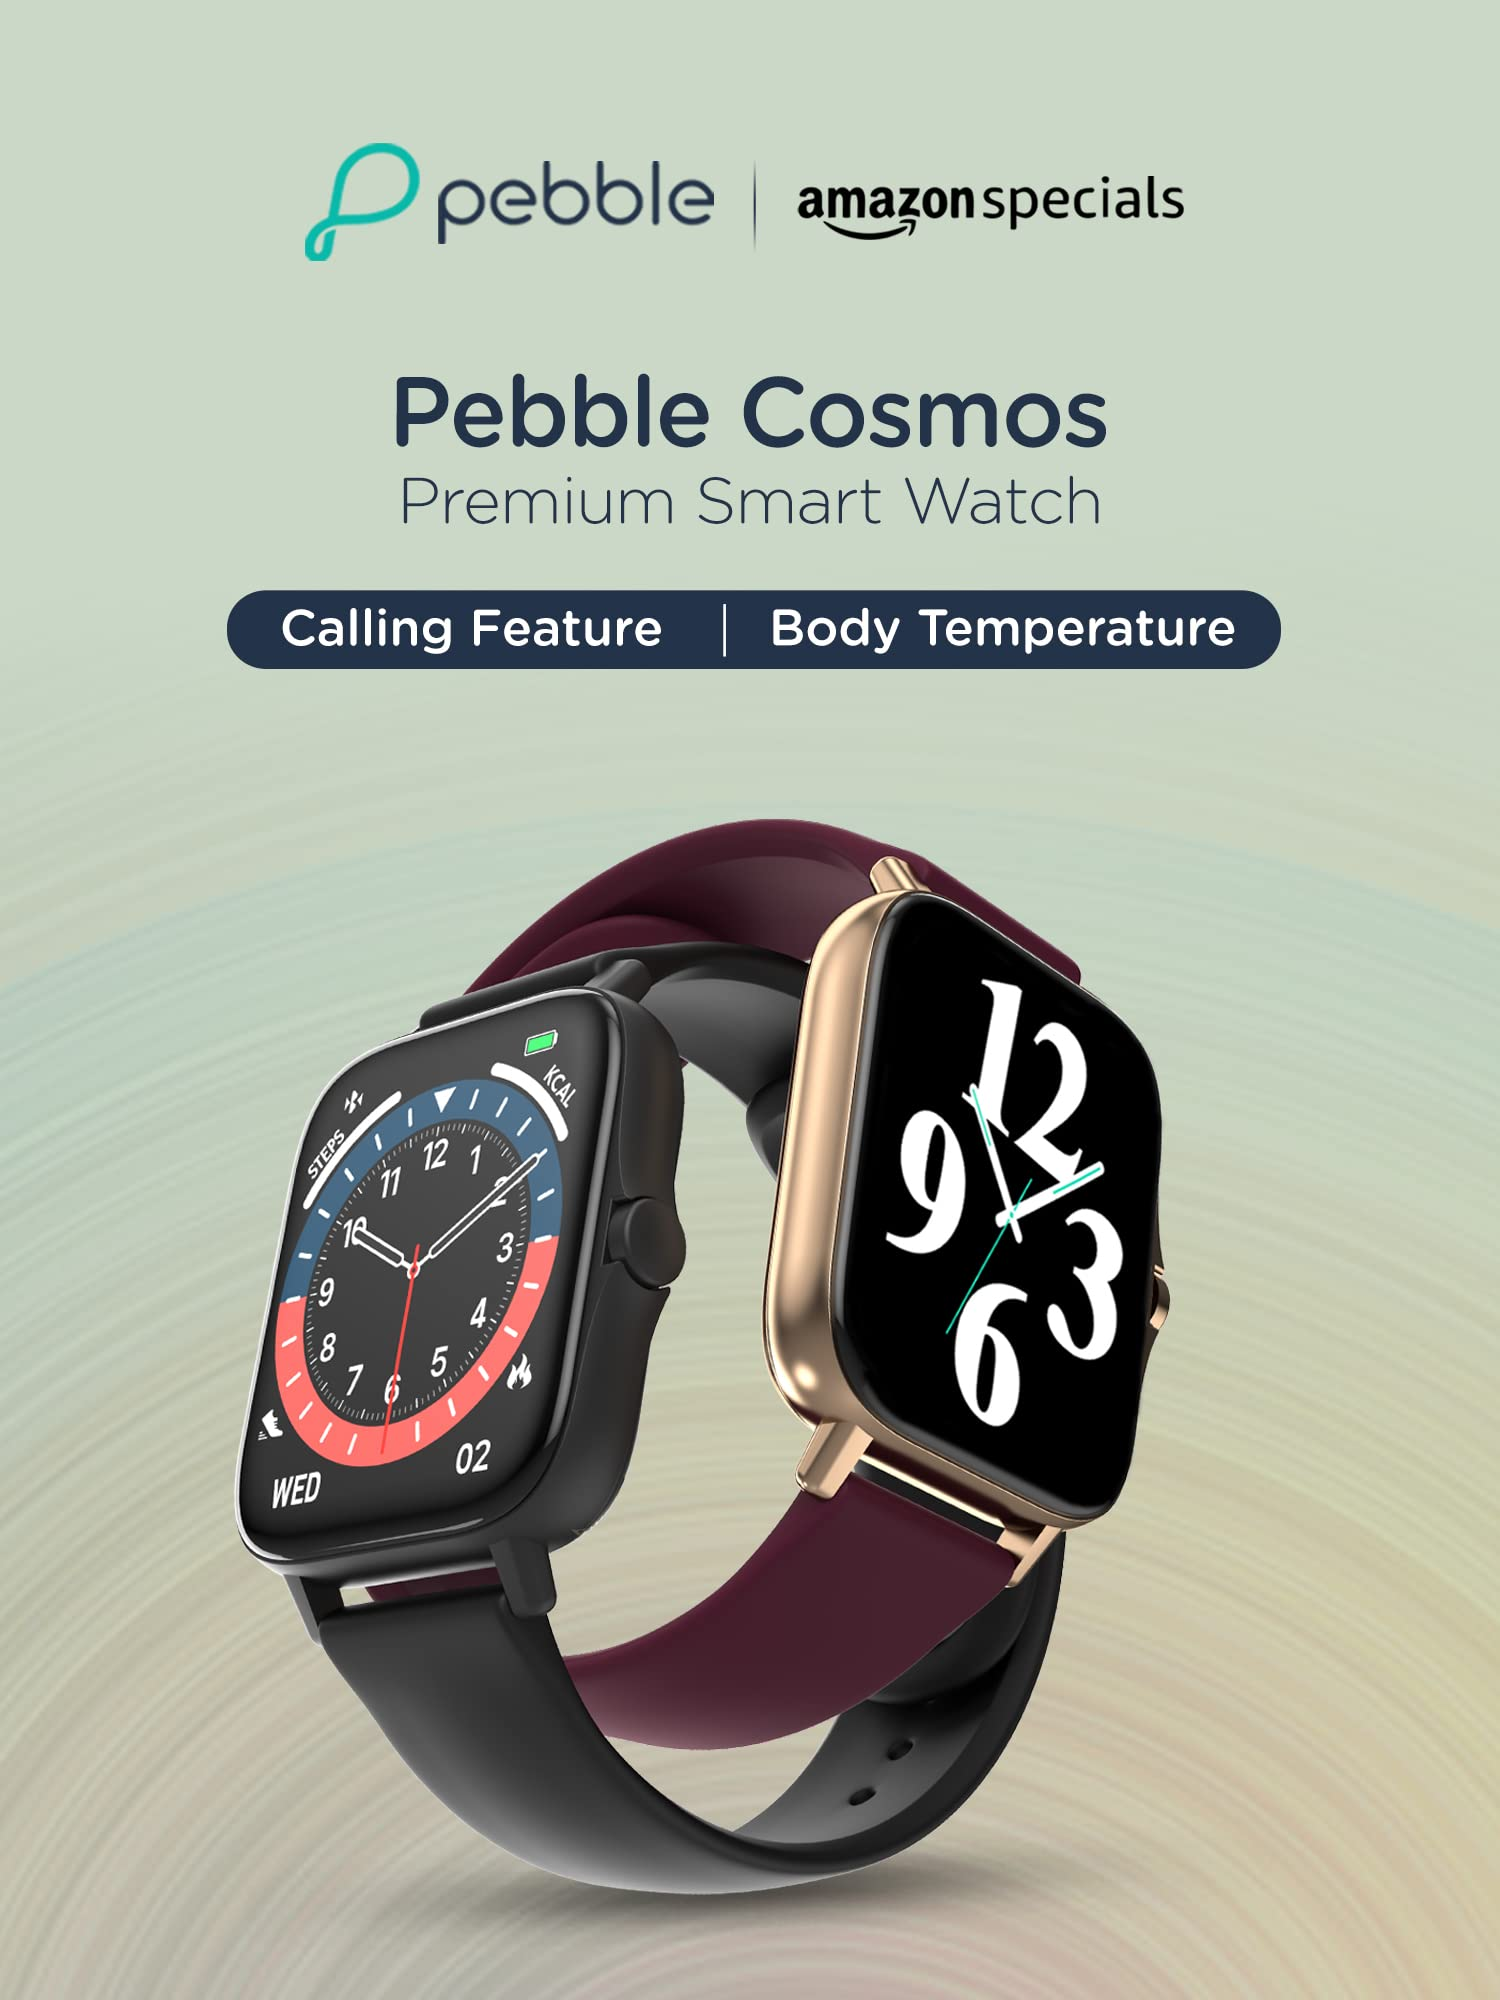 Pebble Cosmos Smartwatch with Calling Feature Launching Soon